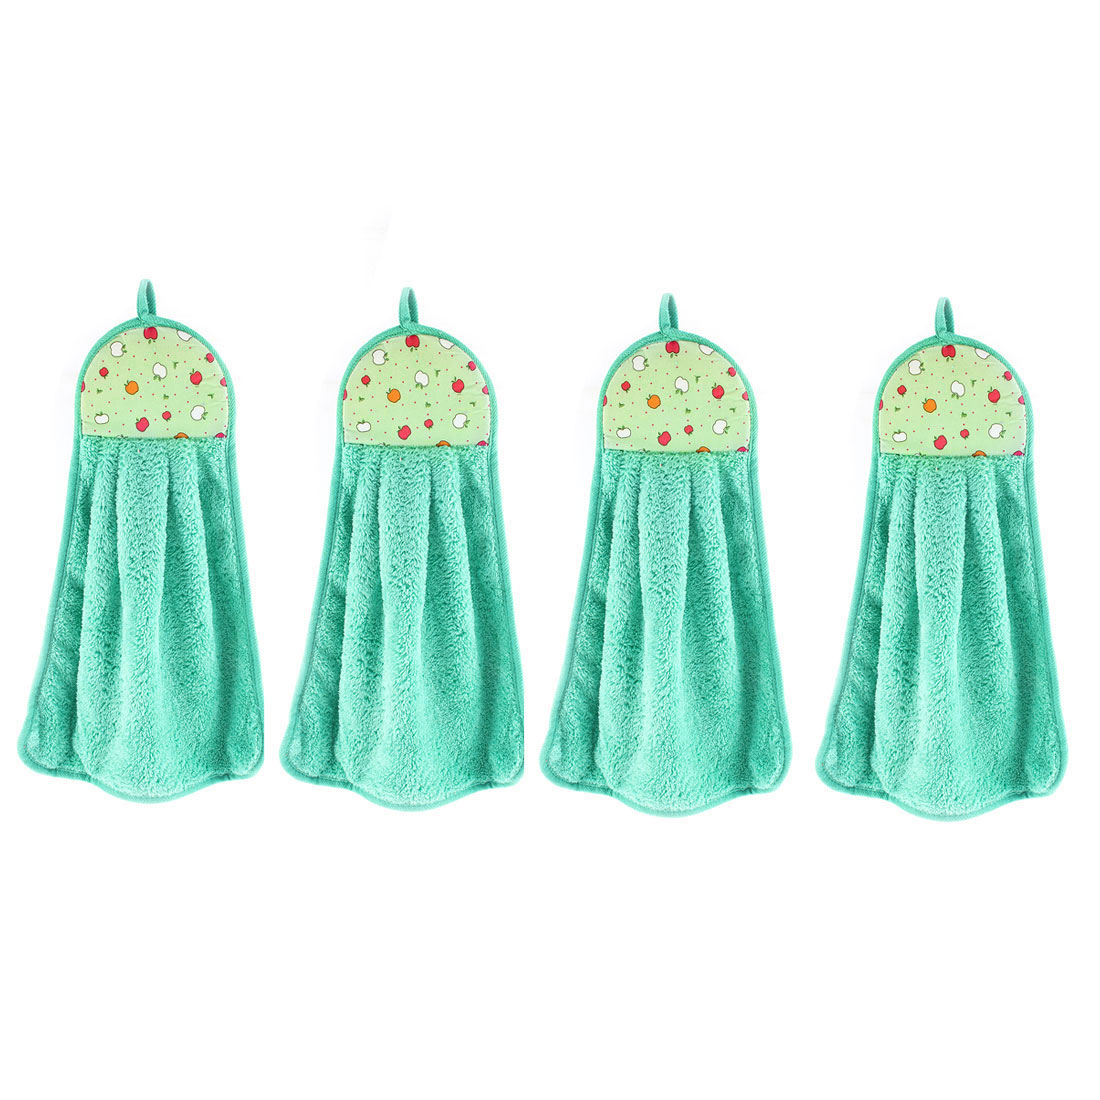 Apple Pattern Wall Hanging Cleaning Hand Drying Towel Turquoise 4 Pcs